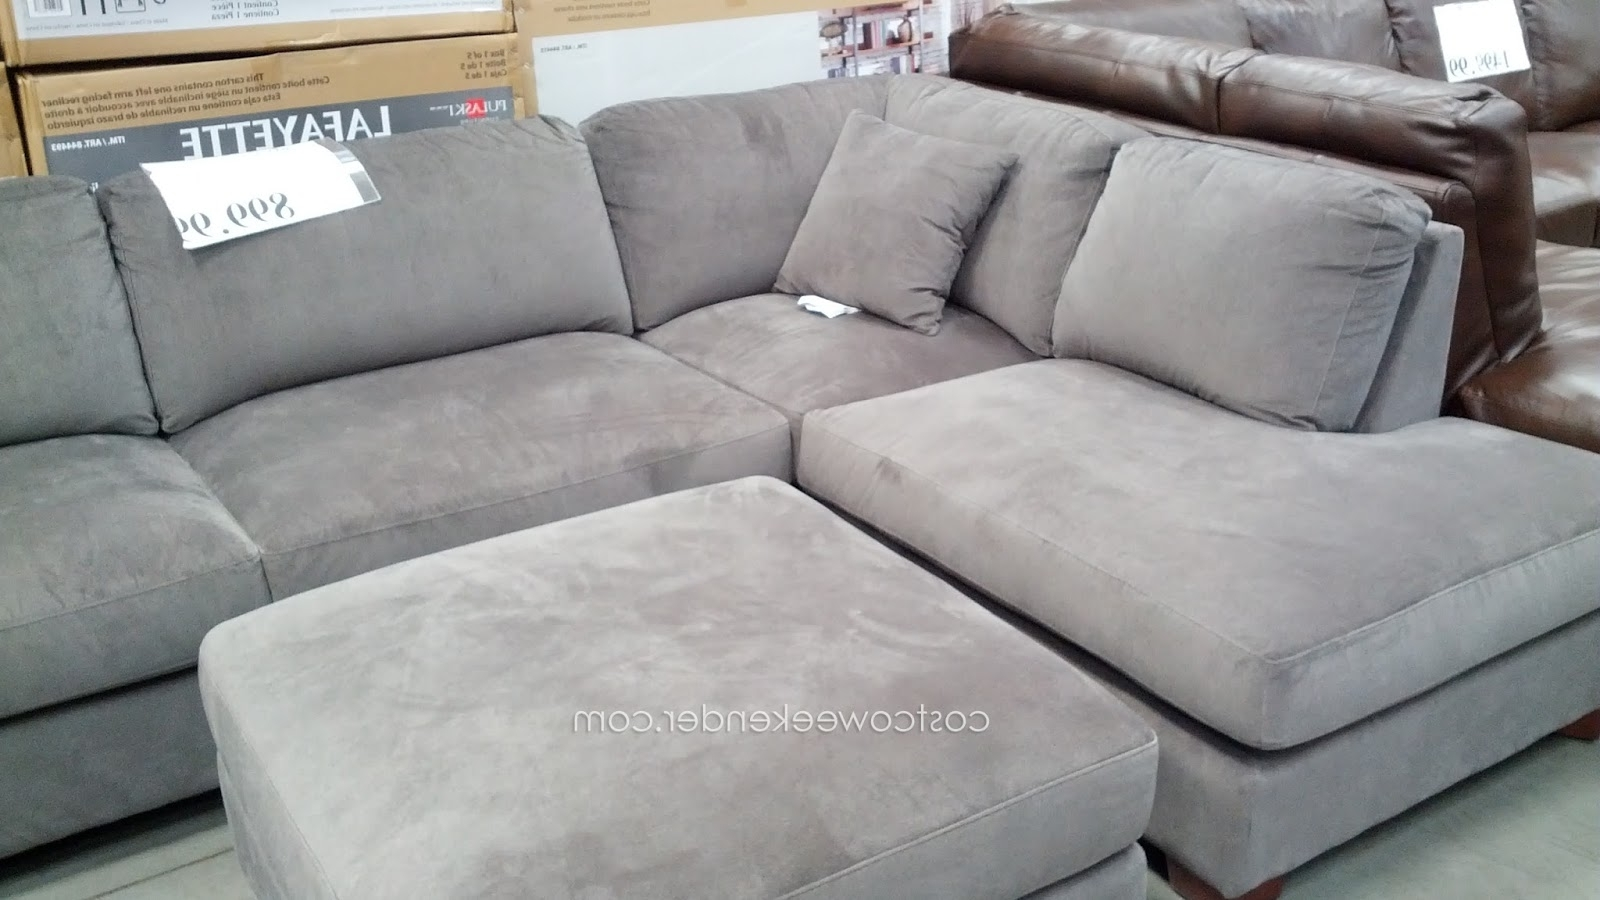 Well Known Sectional Sofas At Costco With Regard To Sectional Sofa Design: Lovely Sectional Sofas Costco Leather (View 7 of 15)